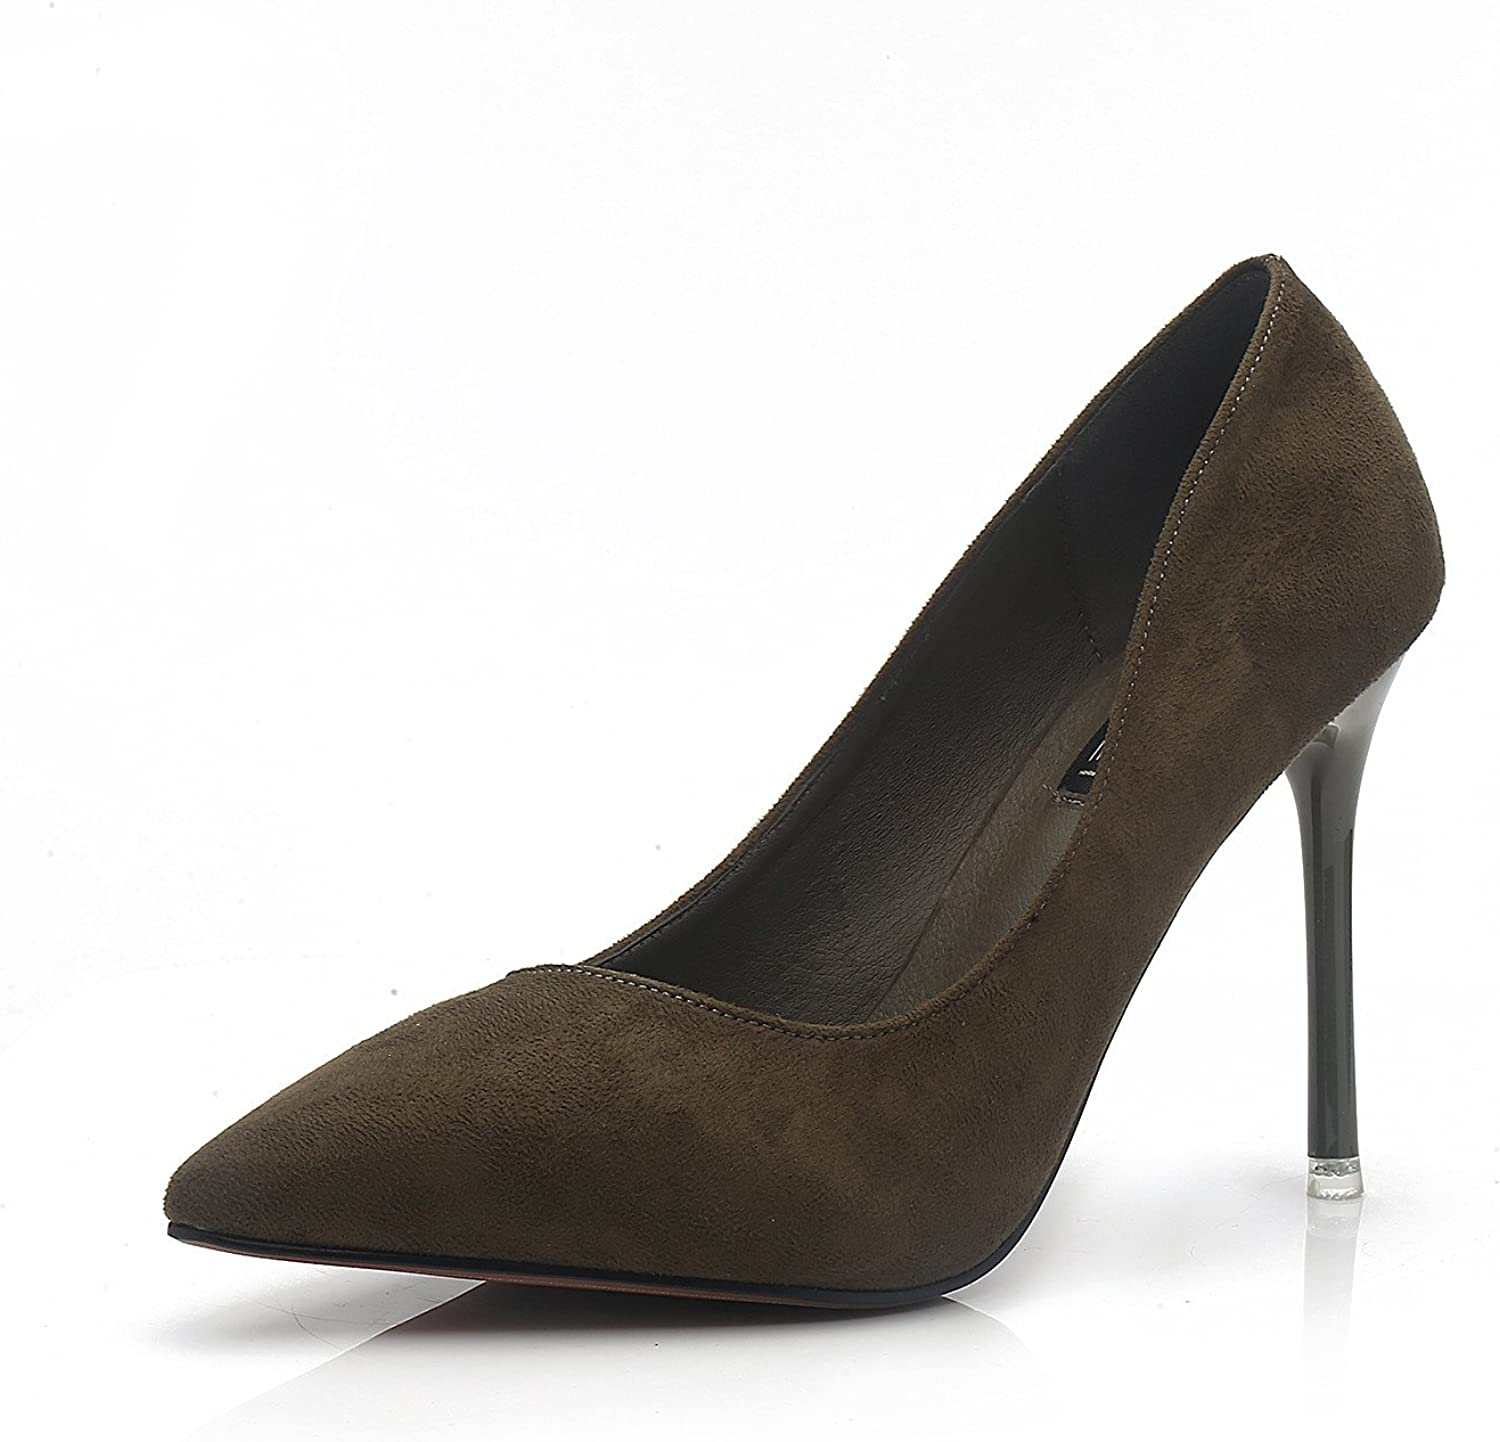 RUGAI-UE Pumps Fashion All-Match Pointed shoes Suede shoes High Heels Shallow Mouth Waterproof